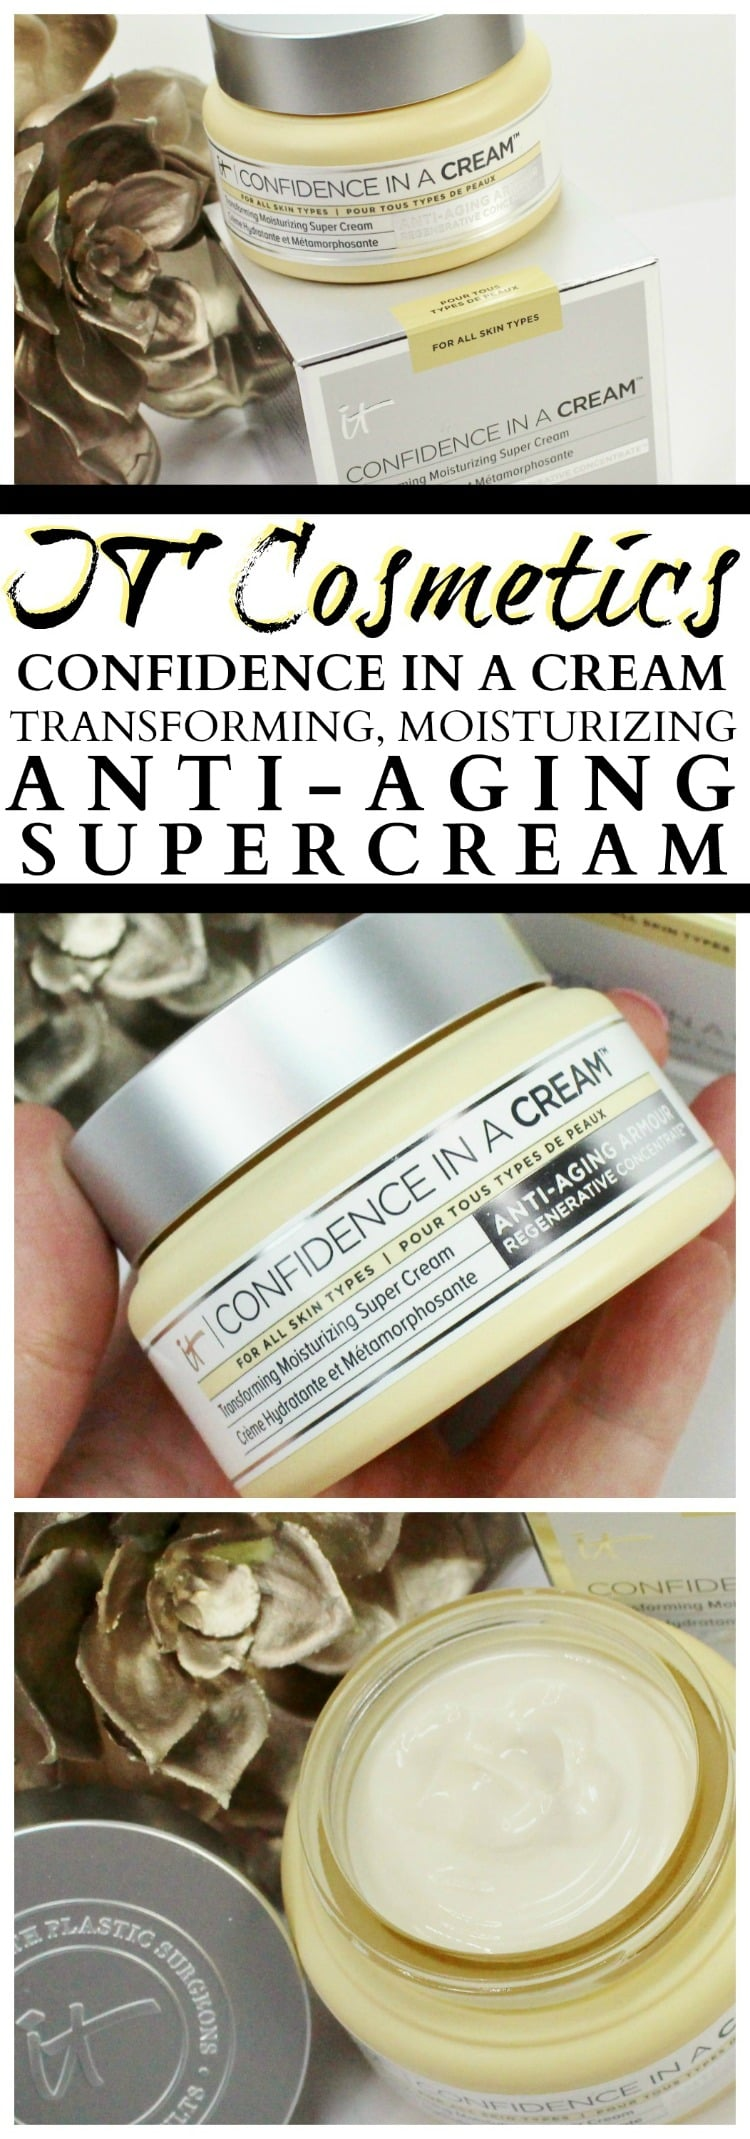 Confidence in a Cream Hydrating Moisturizer by IT Cosmetics #17